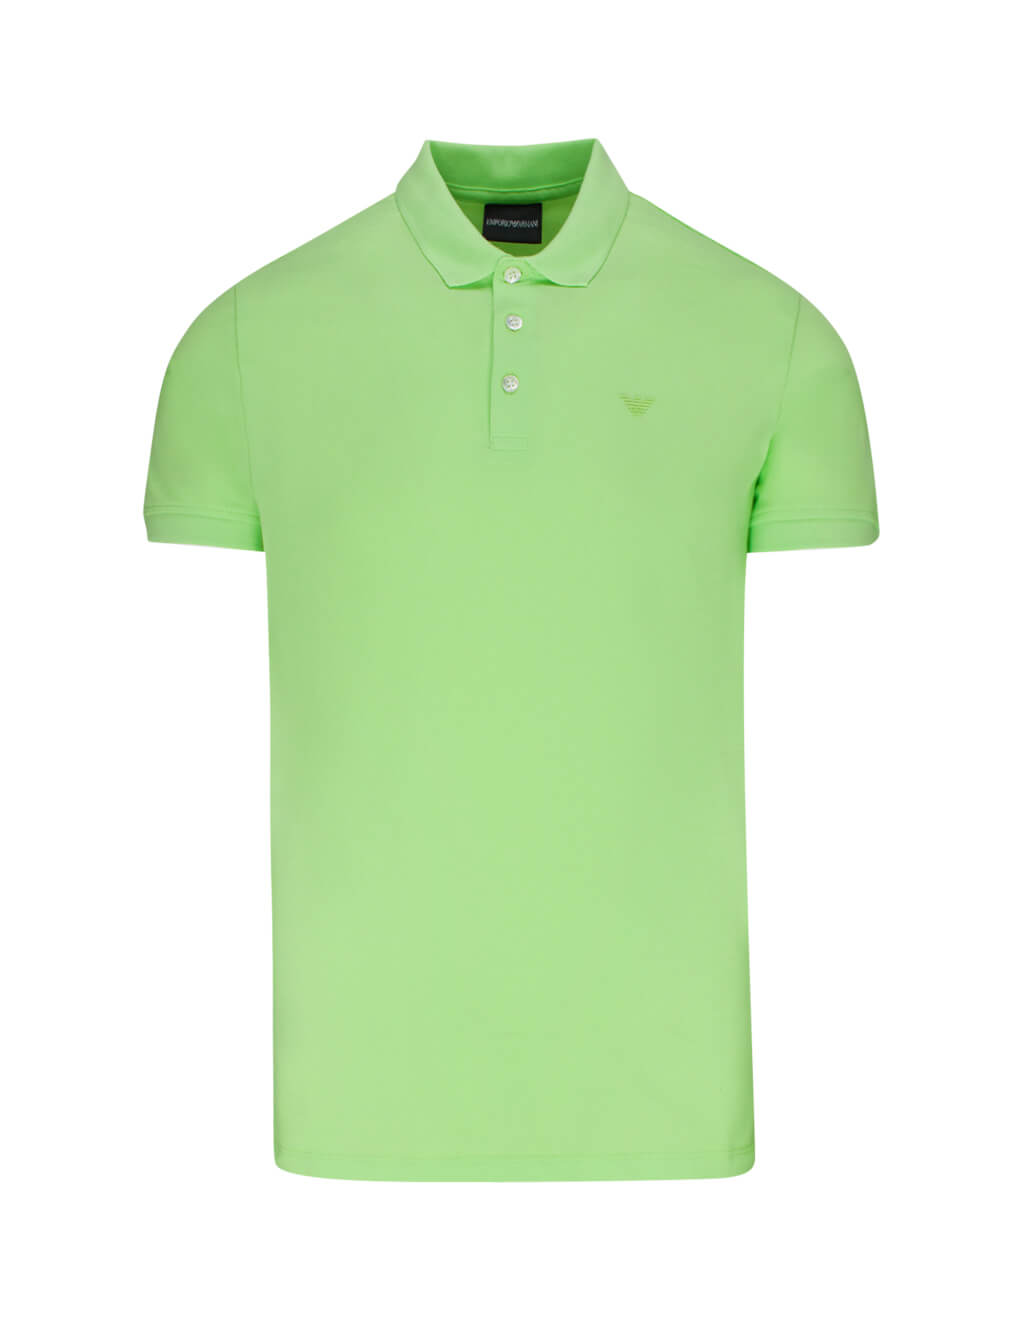 Men's Light Green Emporio Rubber Logo Polo Shirt 8N1F121J0SZ0583